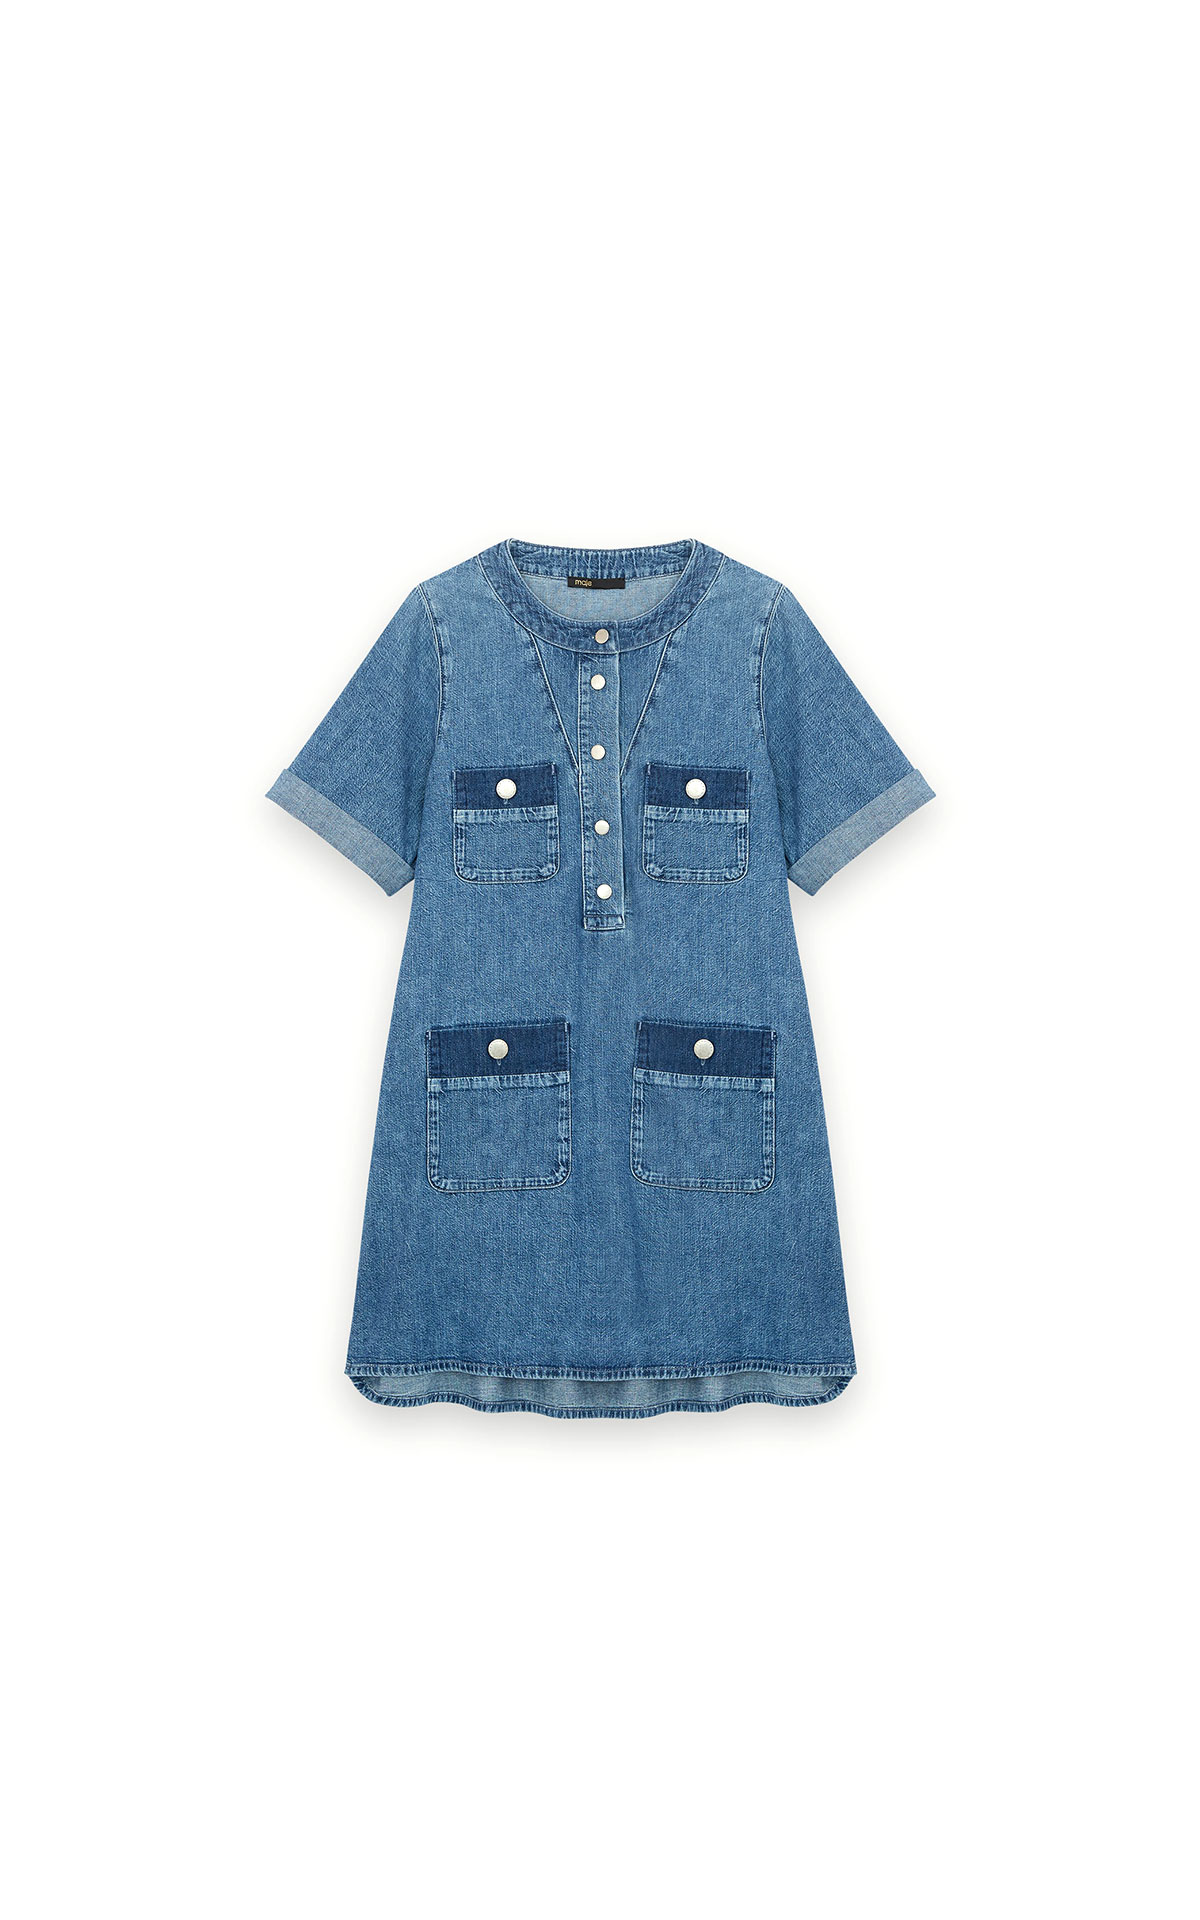 Maje short jean dress with short sleeves at the Bicester Village Shopping Collection